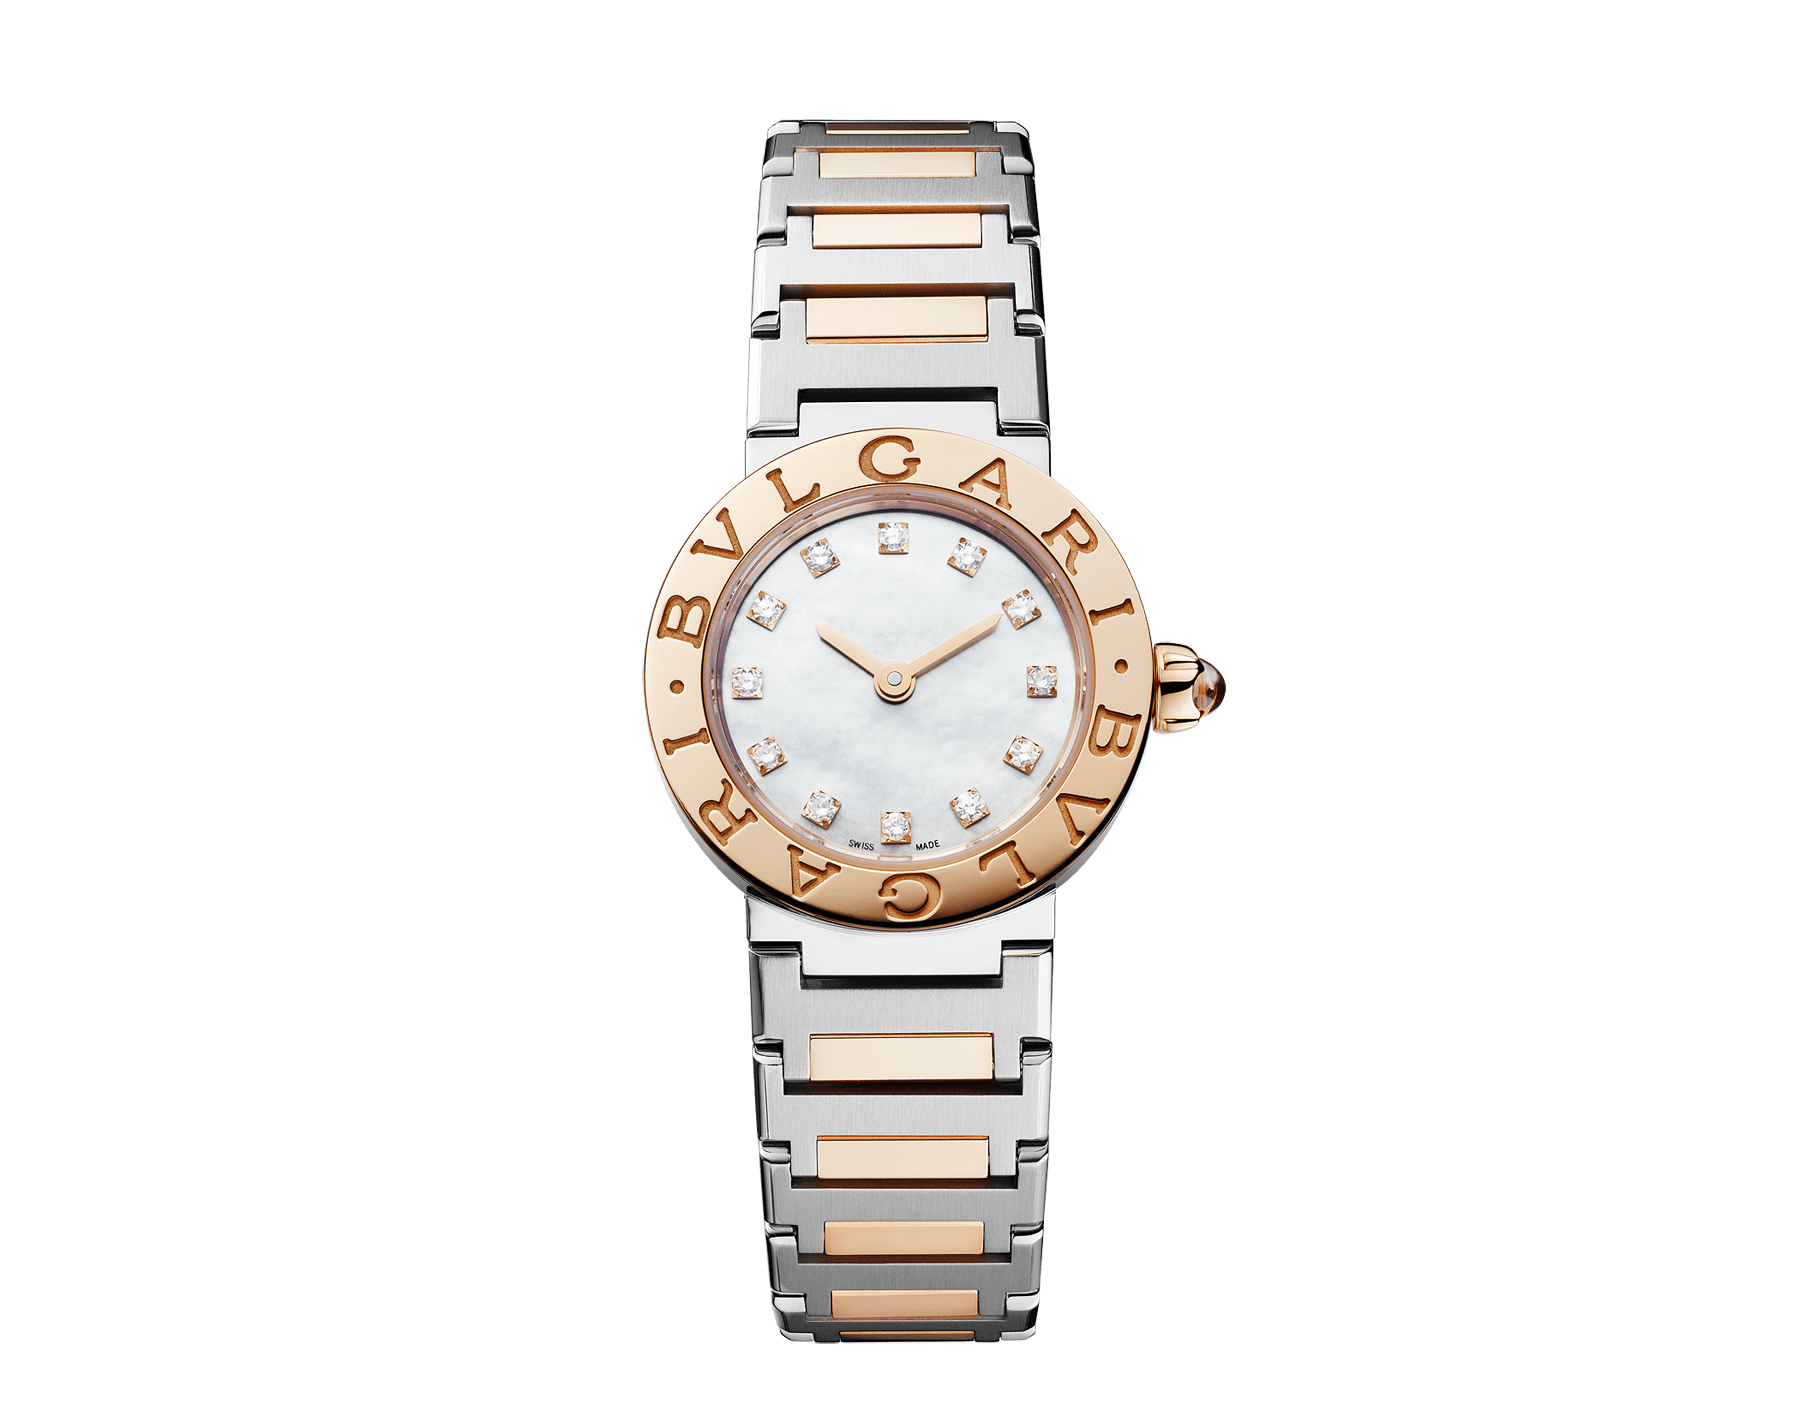 BVLGARI BVLGARI LADY watch with stainless steel case, 18 kt rose gold bezel engraved with double logo, white mother-of-pearl dial, diamond indexes and 18 kt rose gold and stainless steel bracelet 102970 image 1